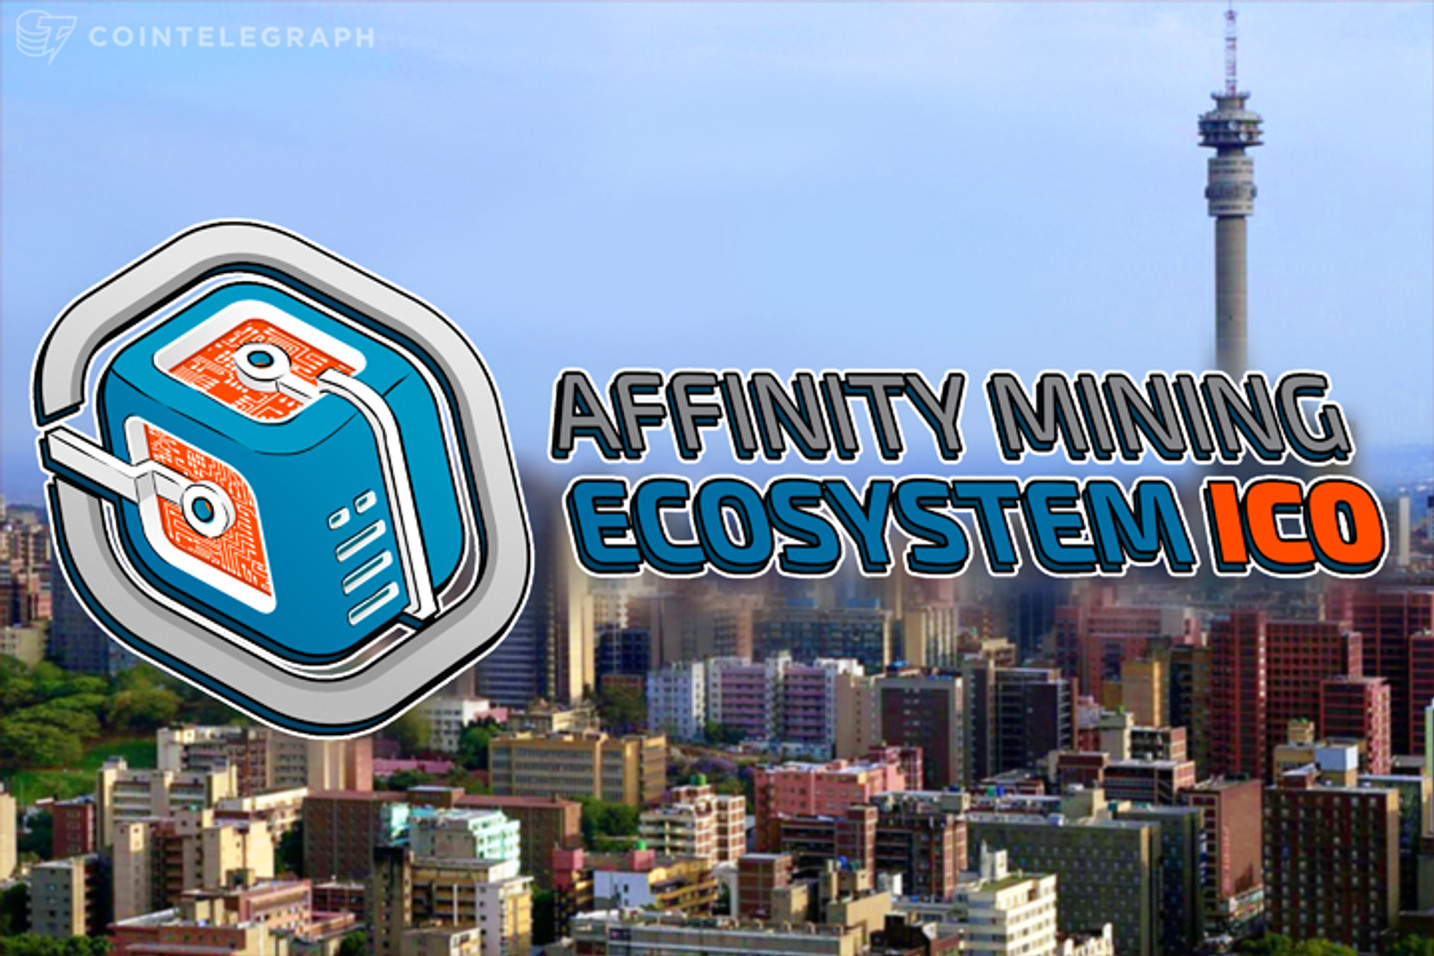 Affinity Mining Ecosystem, The Groundbreaking, New Generation Crypto-mining Suite of Products Is Launched via ICO